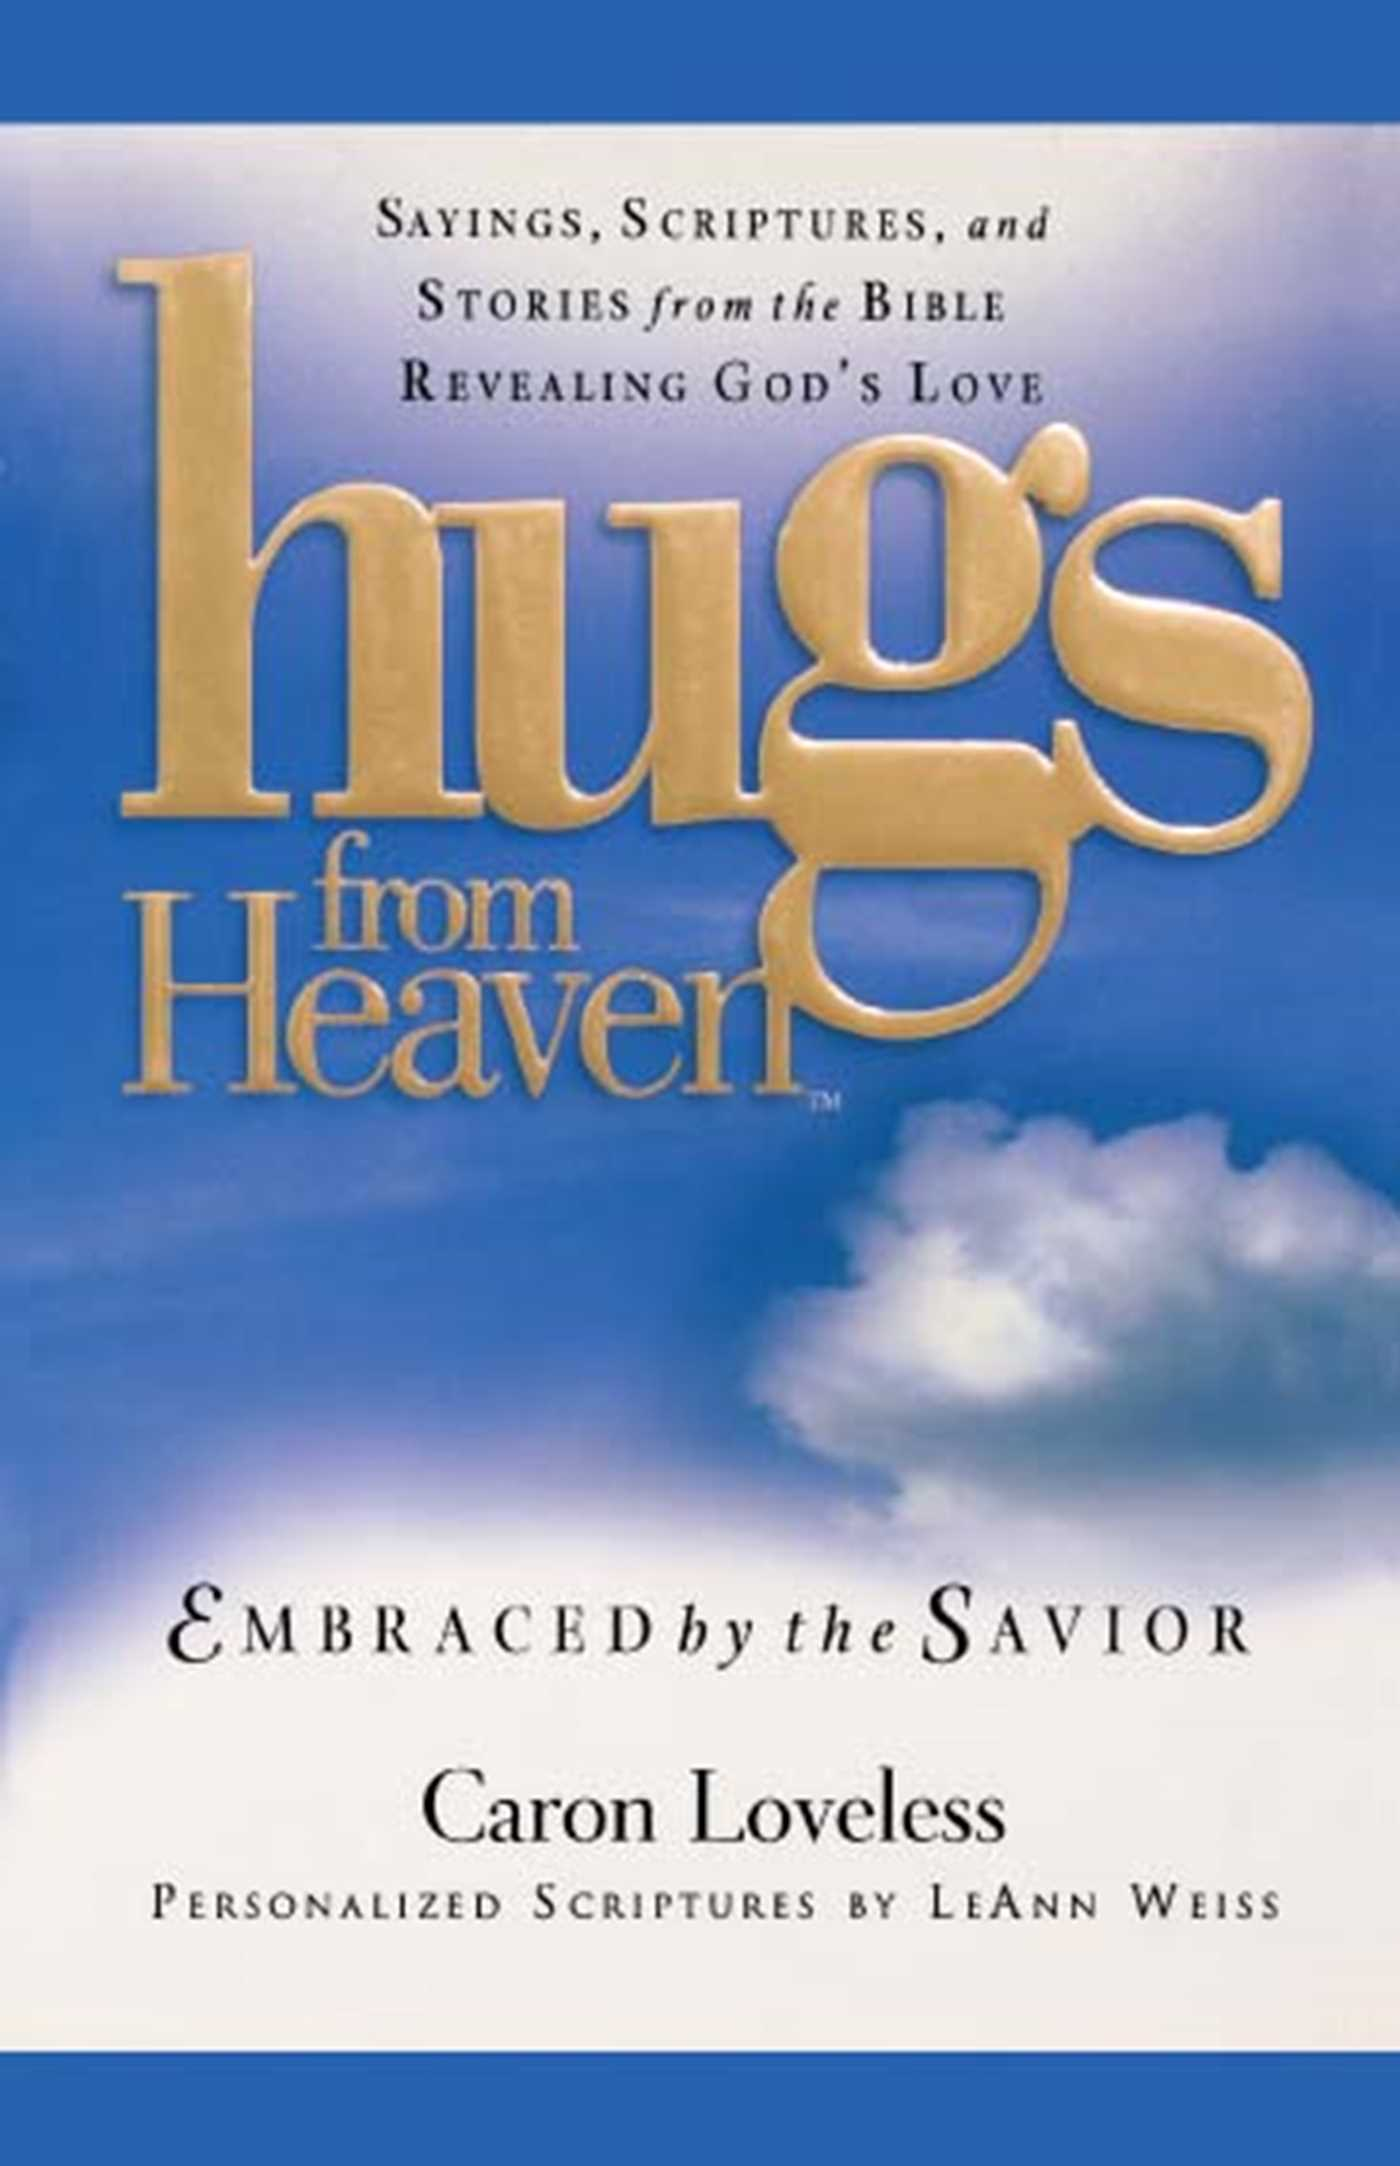 Hugs from heaven embraced by the savior gift 9781439124376 hr